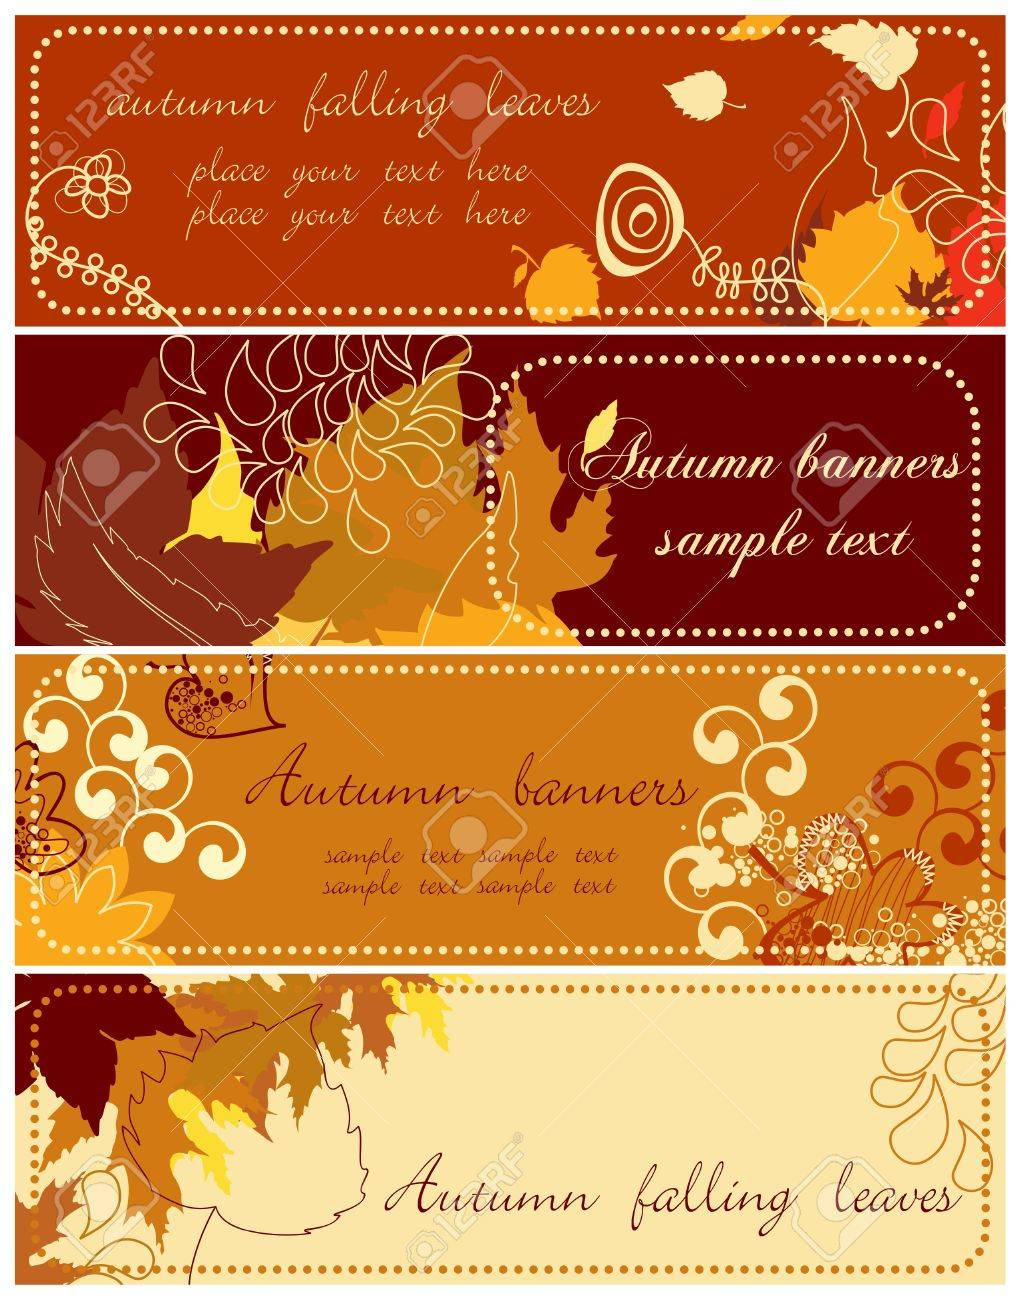 Autumn banners collection 2 Stock Vector - 7700355